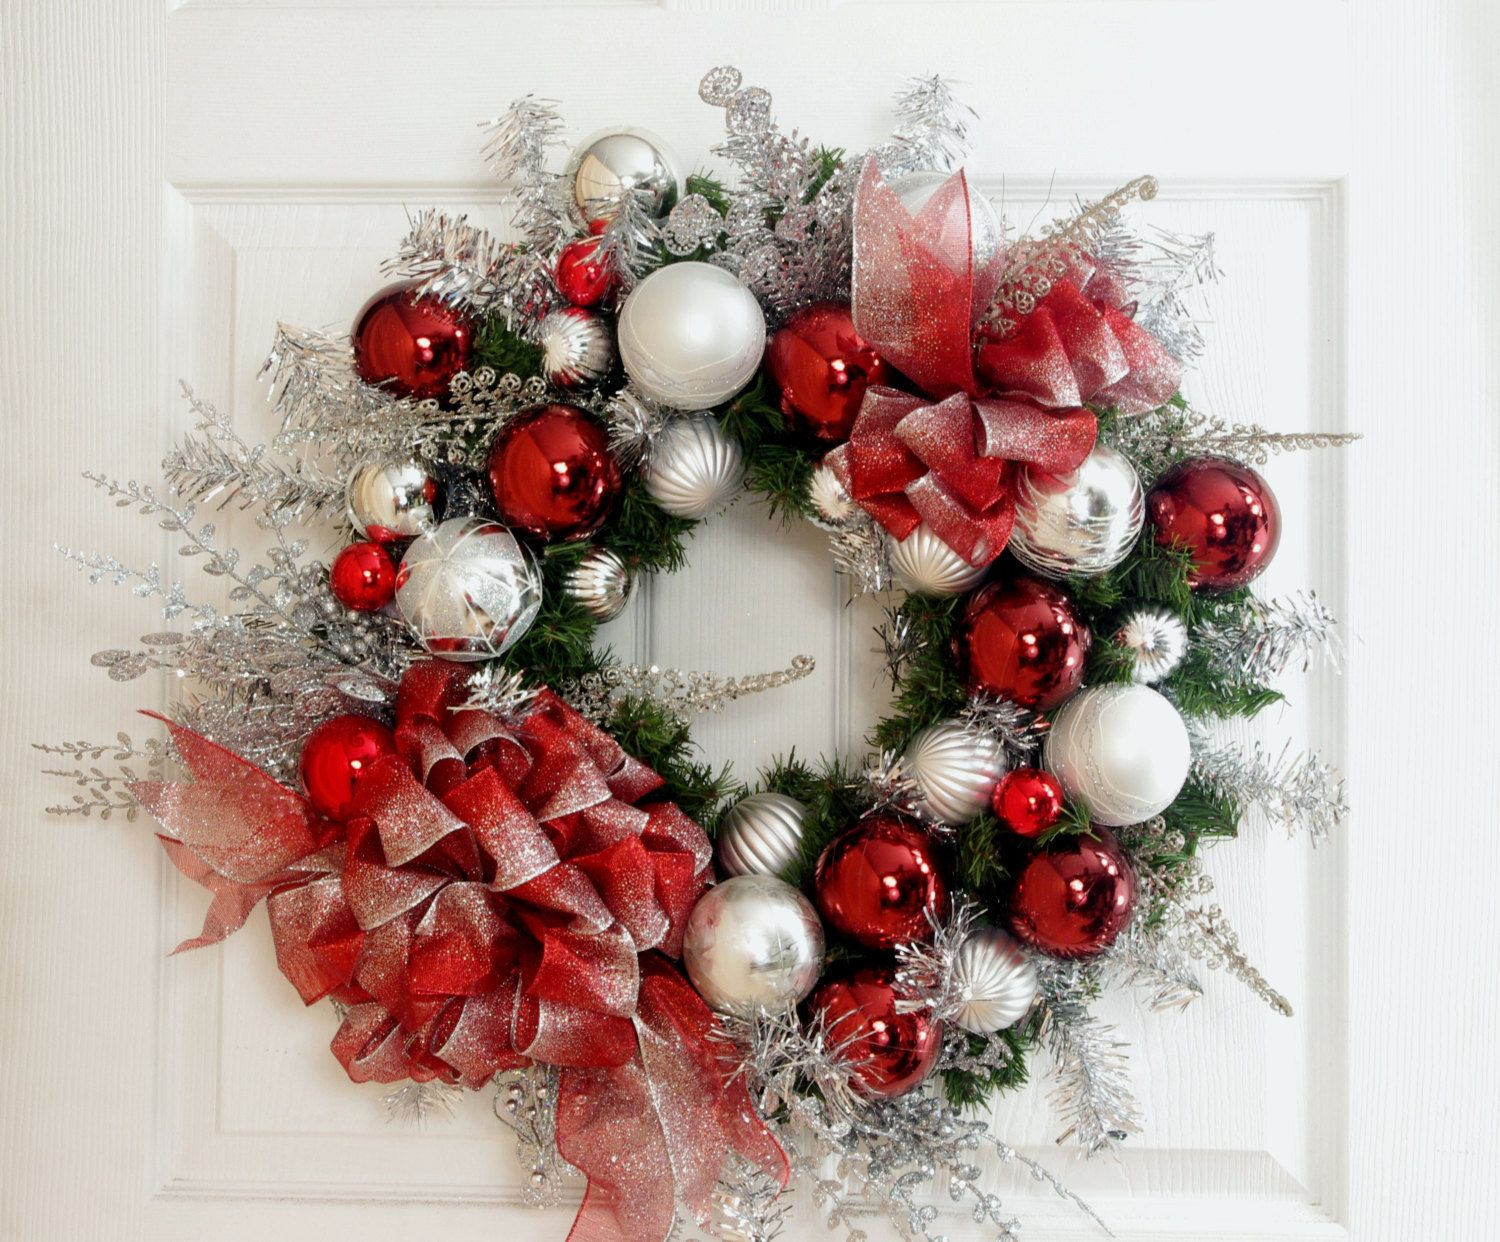 Red and White Wreath * Christmas Wreath * Winter Wreath * Red Wreath * Front Door Wreath * Christmas Decor * Holiday Decor * Ohio State by englishrosedesignsoh on Etsy